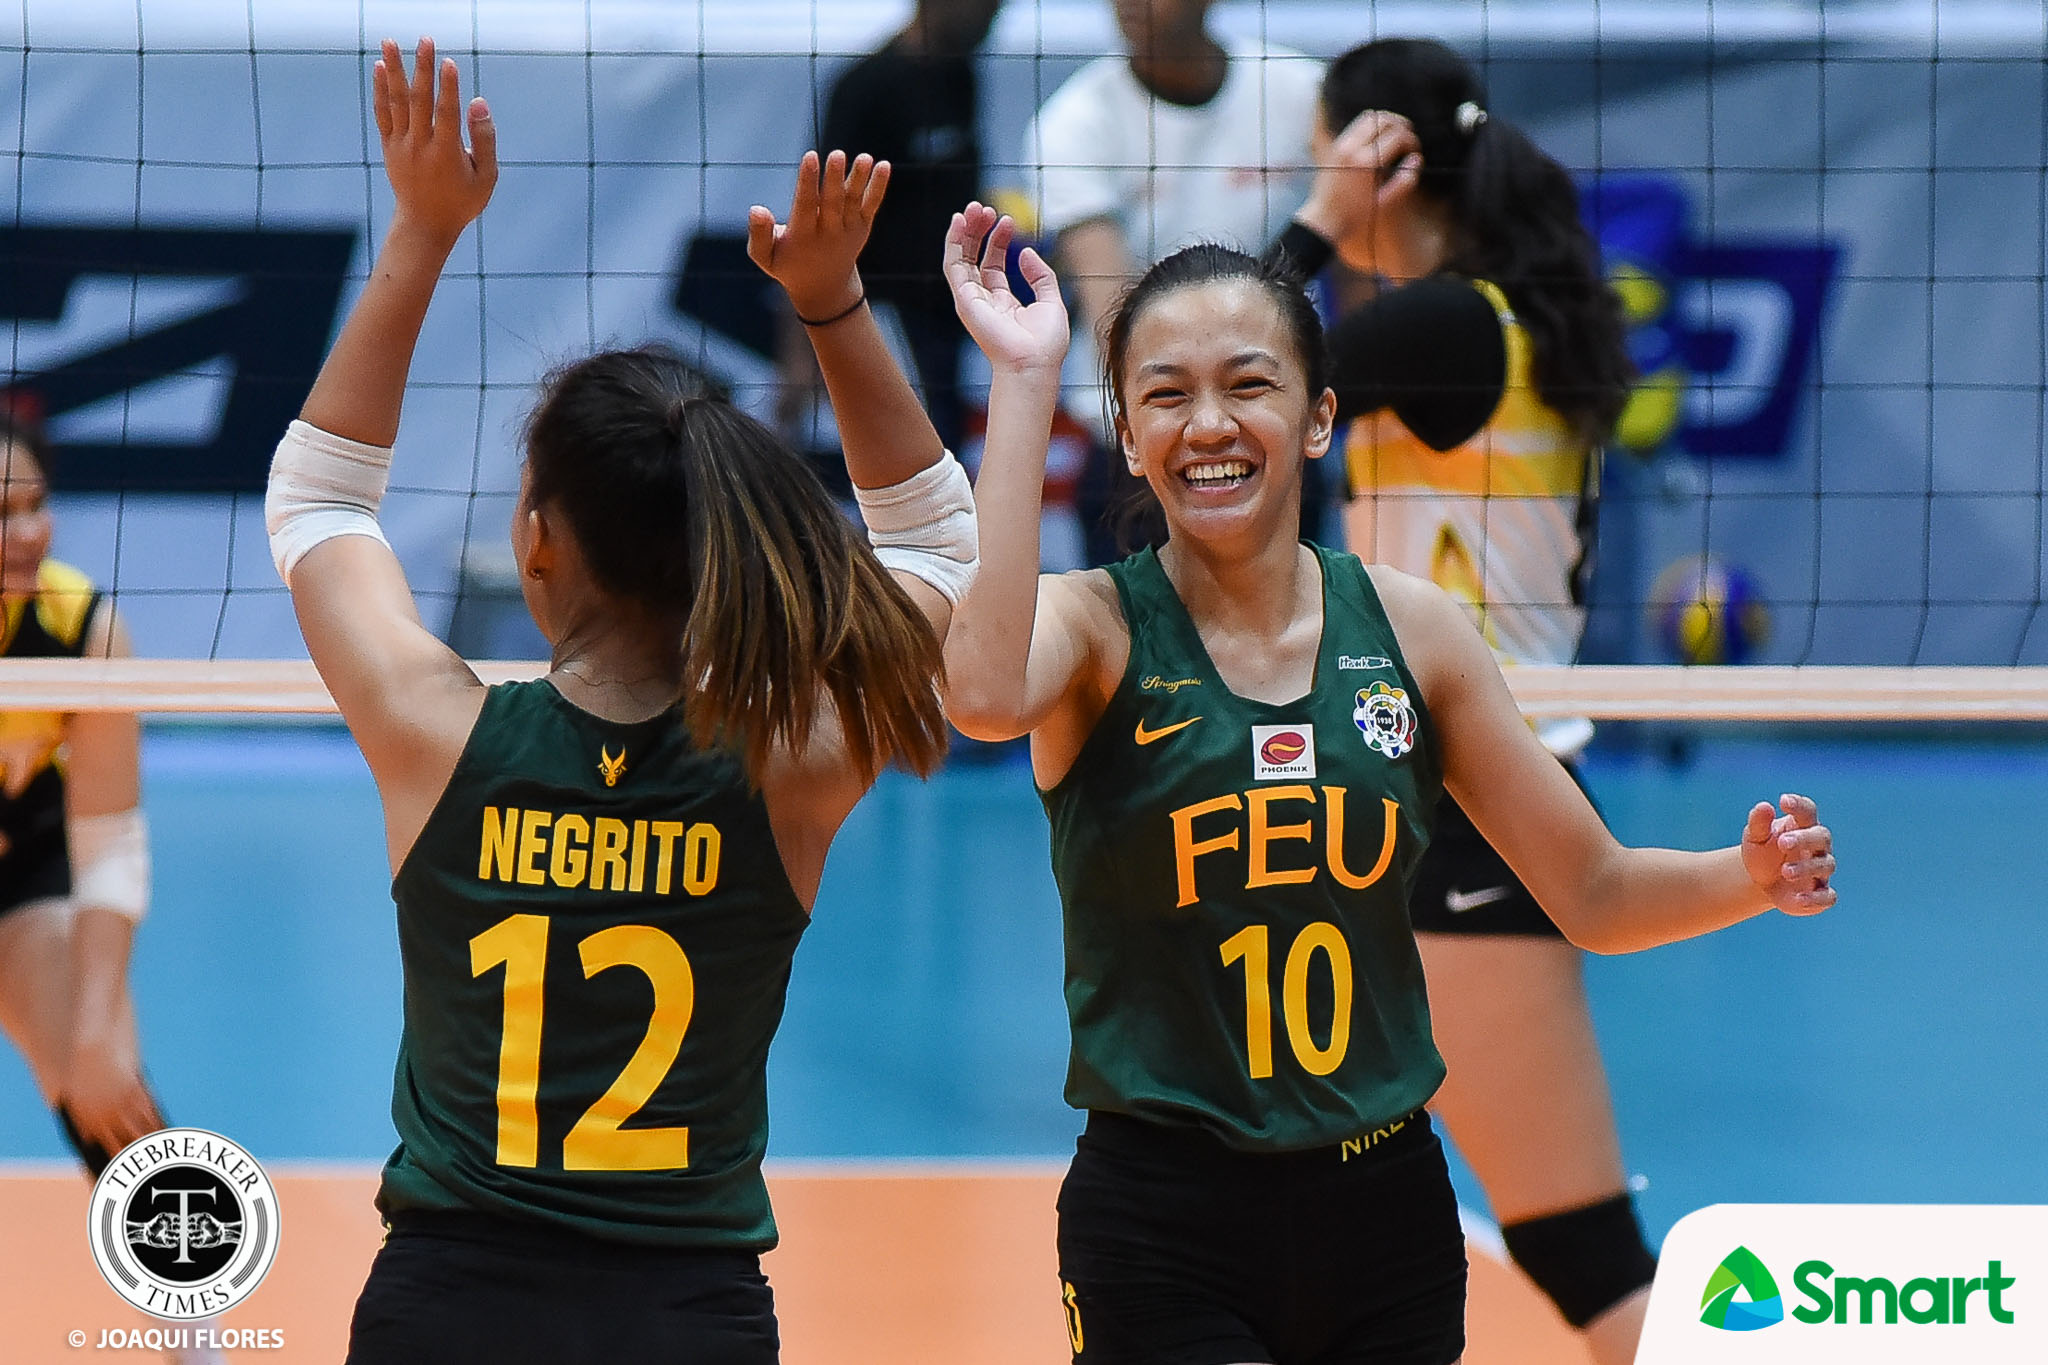 Tiebreaker Times Lady Tamaraws notch first win of second round, extend Golden Tigresses woes FEU News UAAP UST Volleyball  UST Women's Volleyball UAAP Season 80 Women's Volleyball UAAP Season 80 Toni Basas Kyle Negrito Kyla Atienza Kungfu Reyes George Pascua FEU Women's Volleyball Cherry Rondina Bernadeth Pons